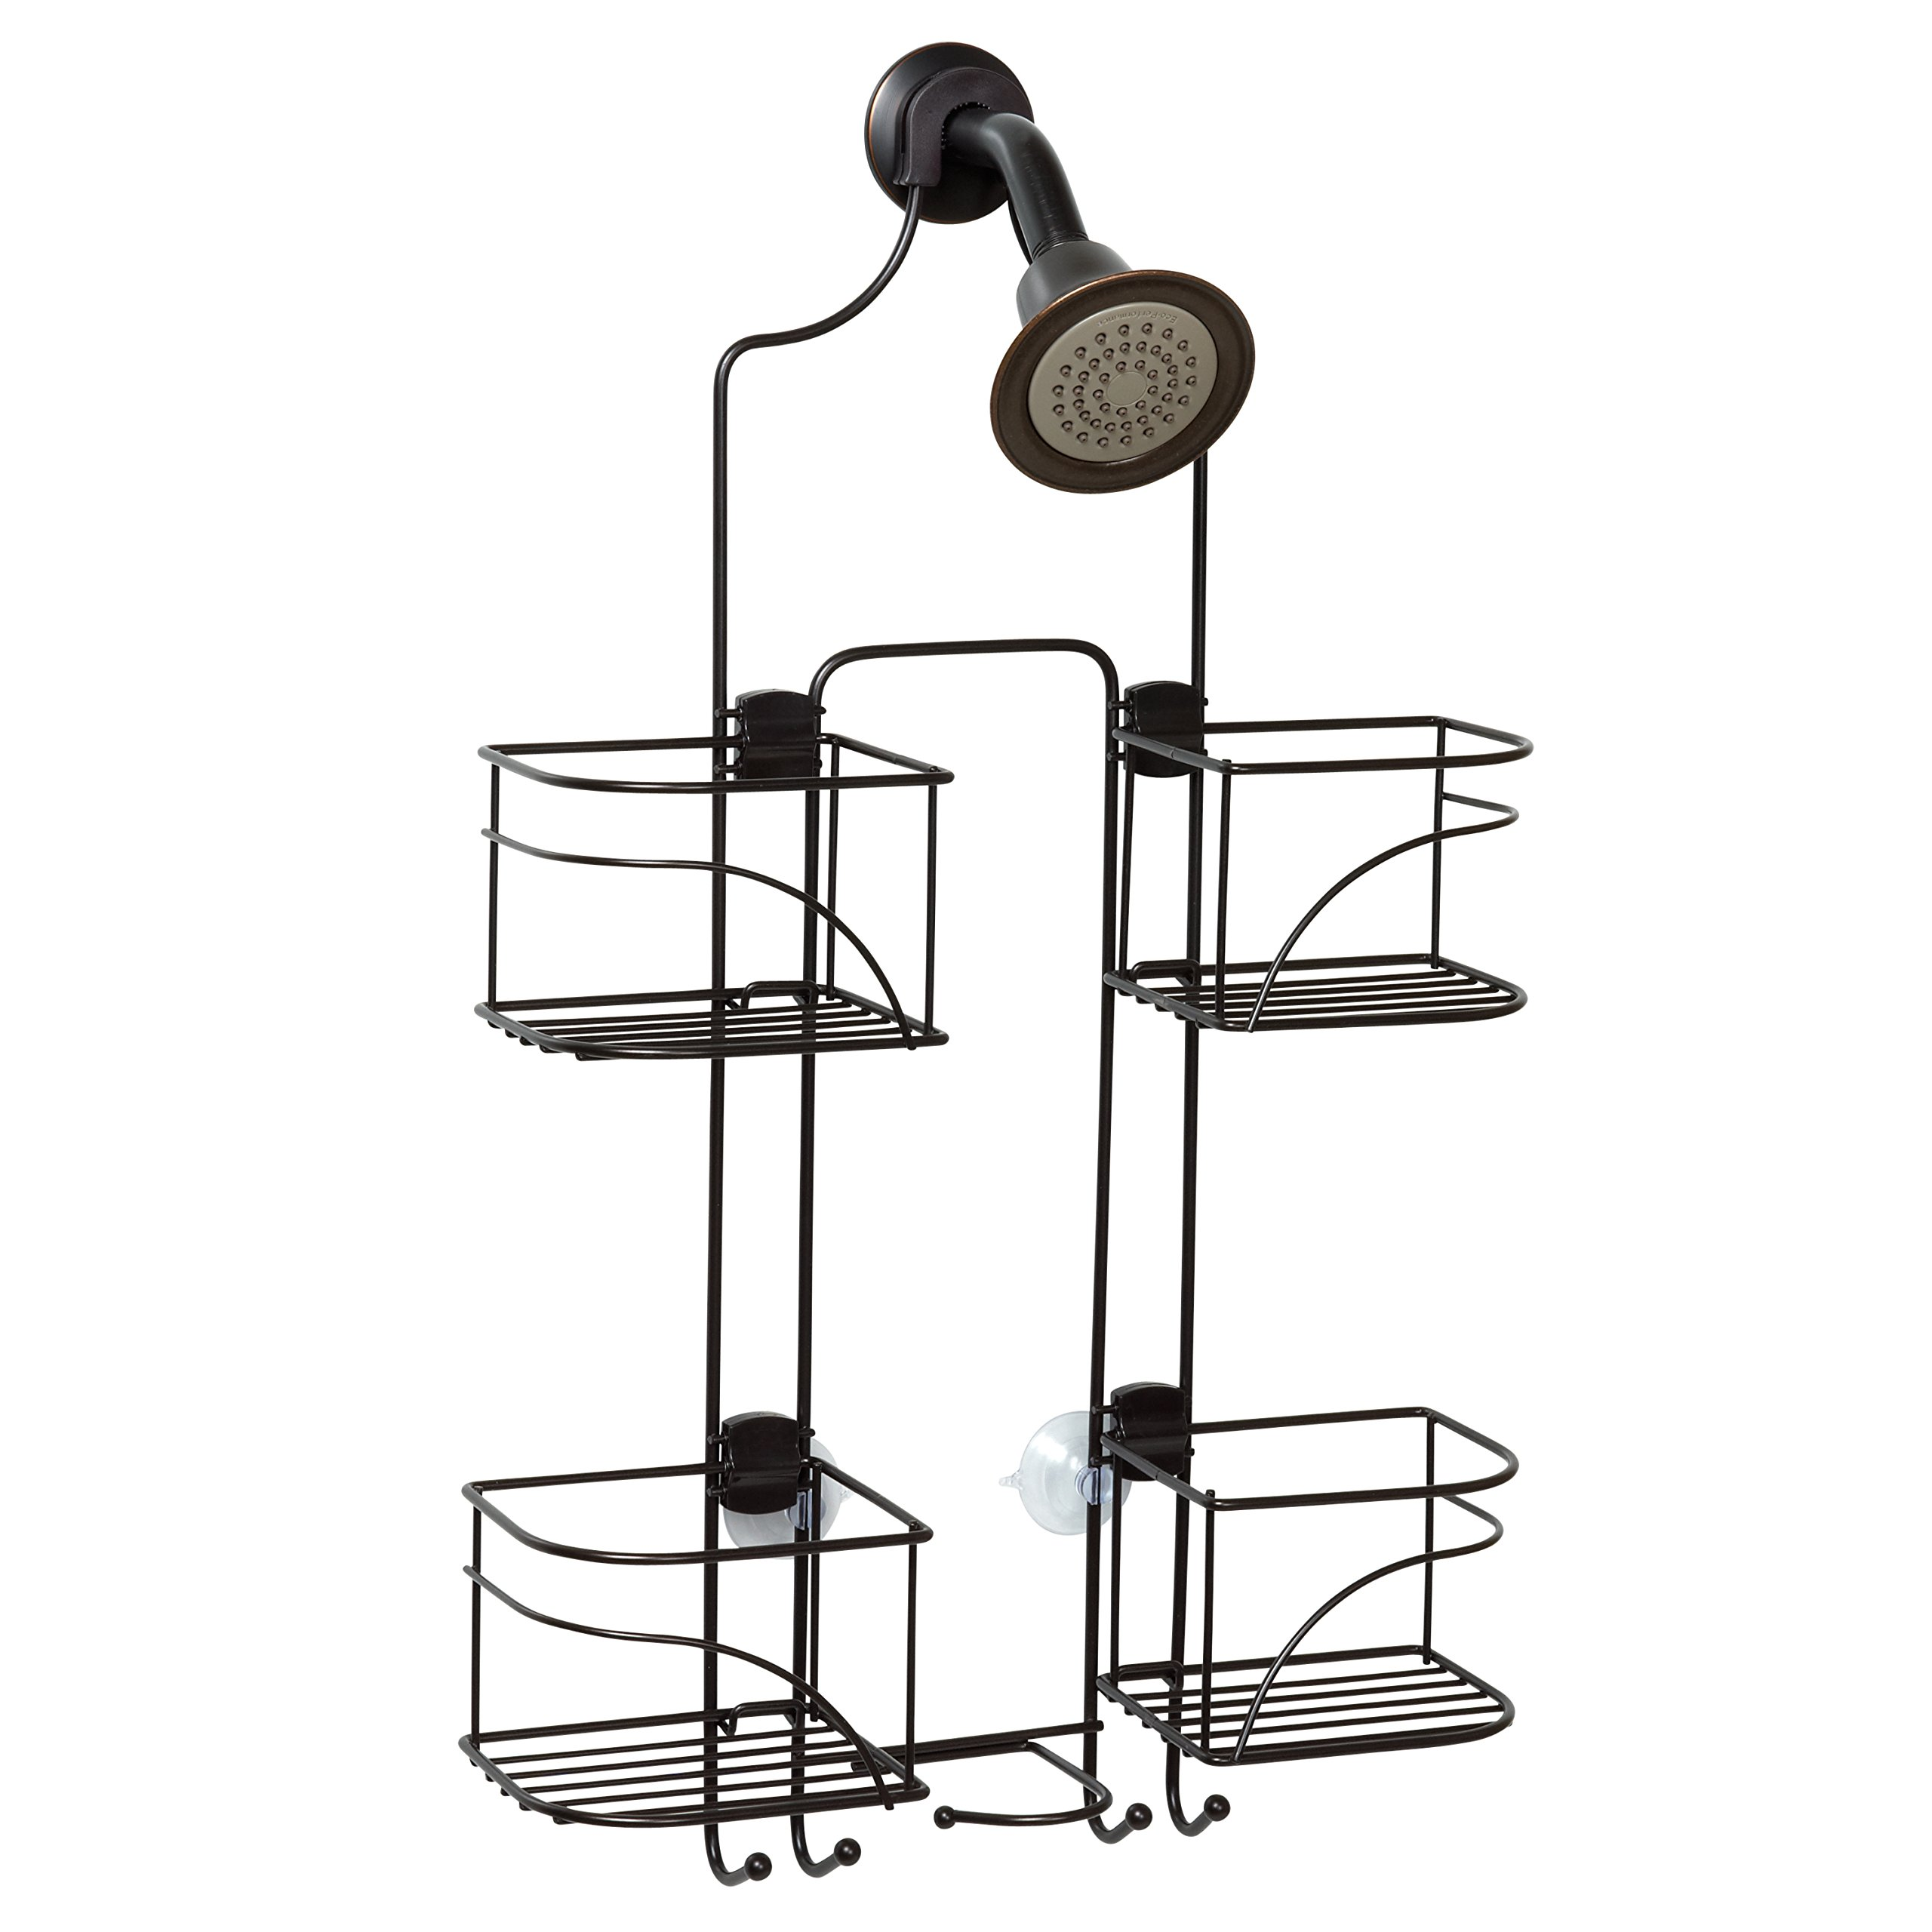 Zenna Home E7446HB, Expandable Over-the-Showerhead Caddy, Bronze